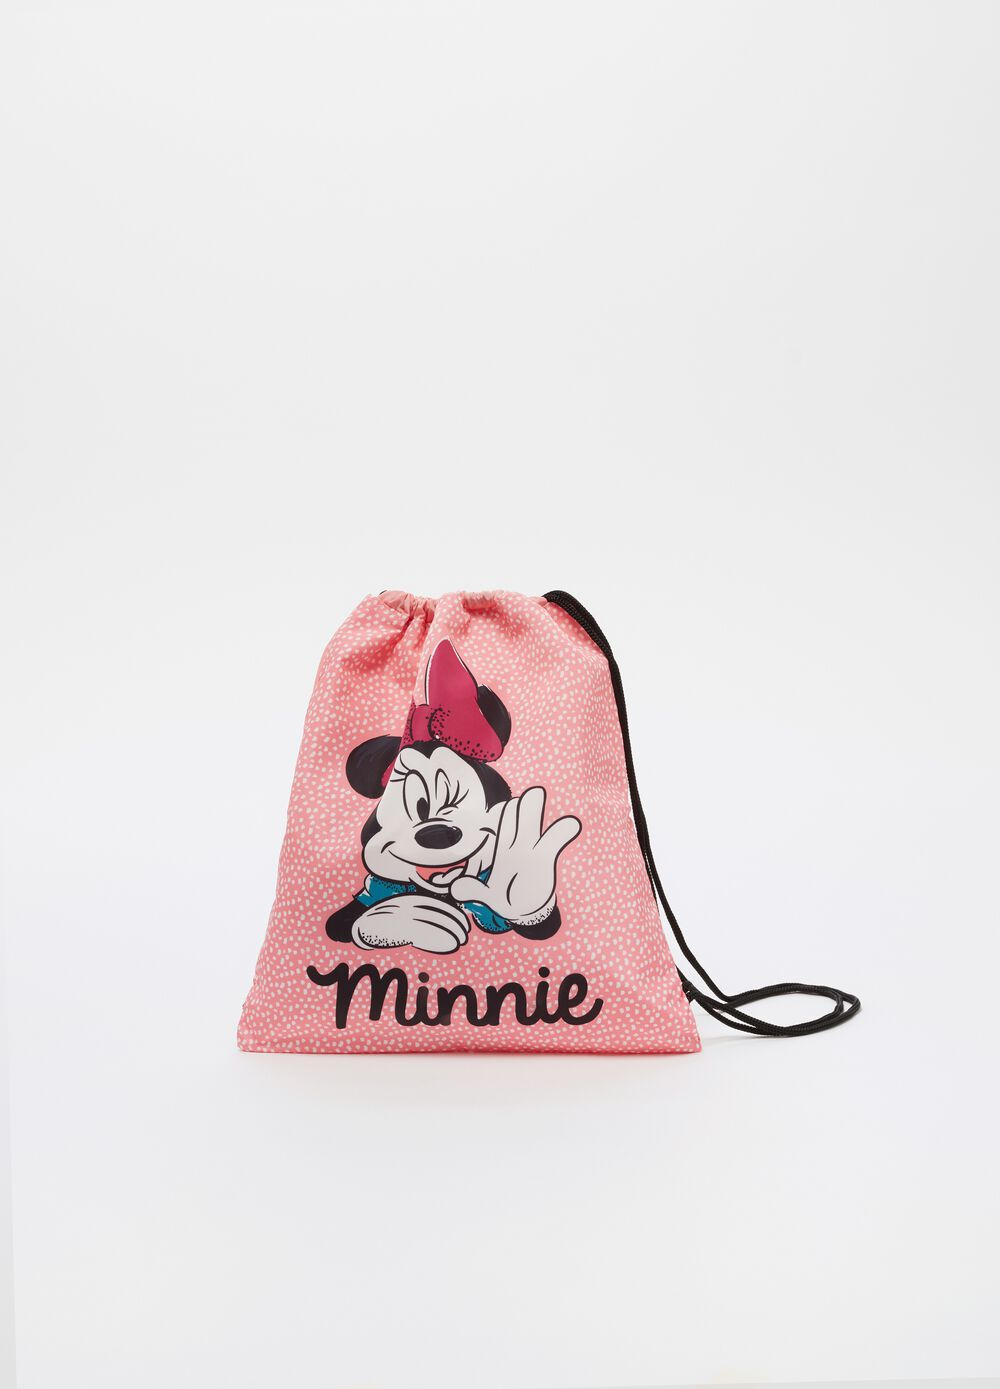 Disney Minnie Mouse baby sleeping bag with pattern